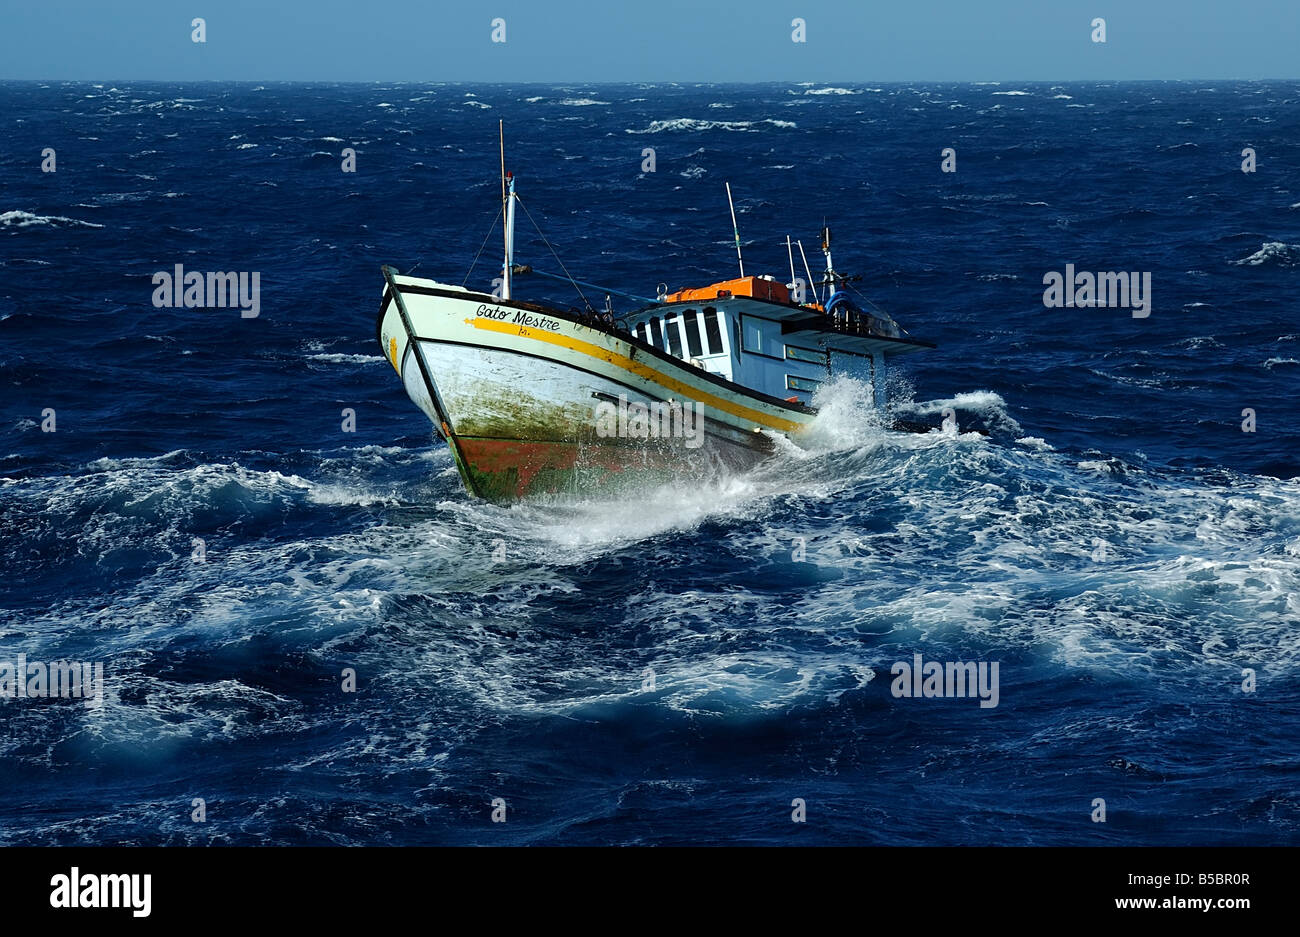 Fishing boat in rough sea stock photo 20543175 alamy for Ocean fishing boats